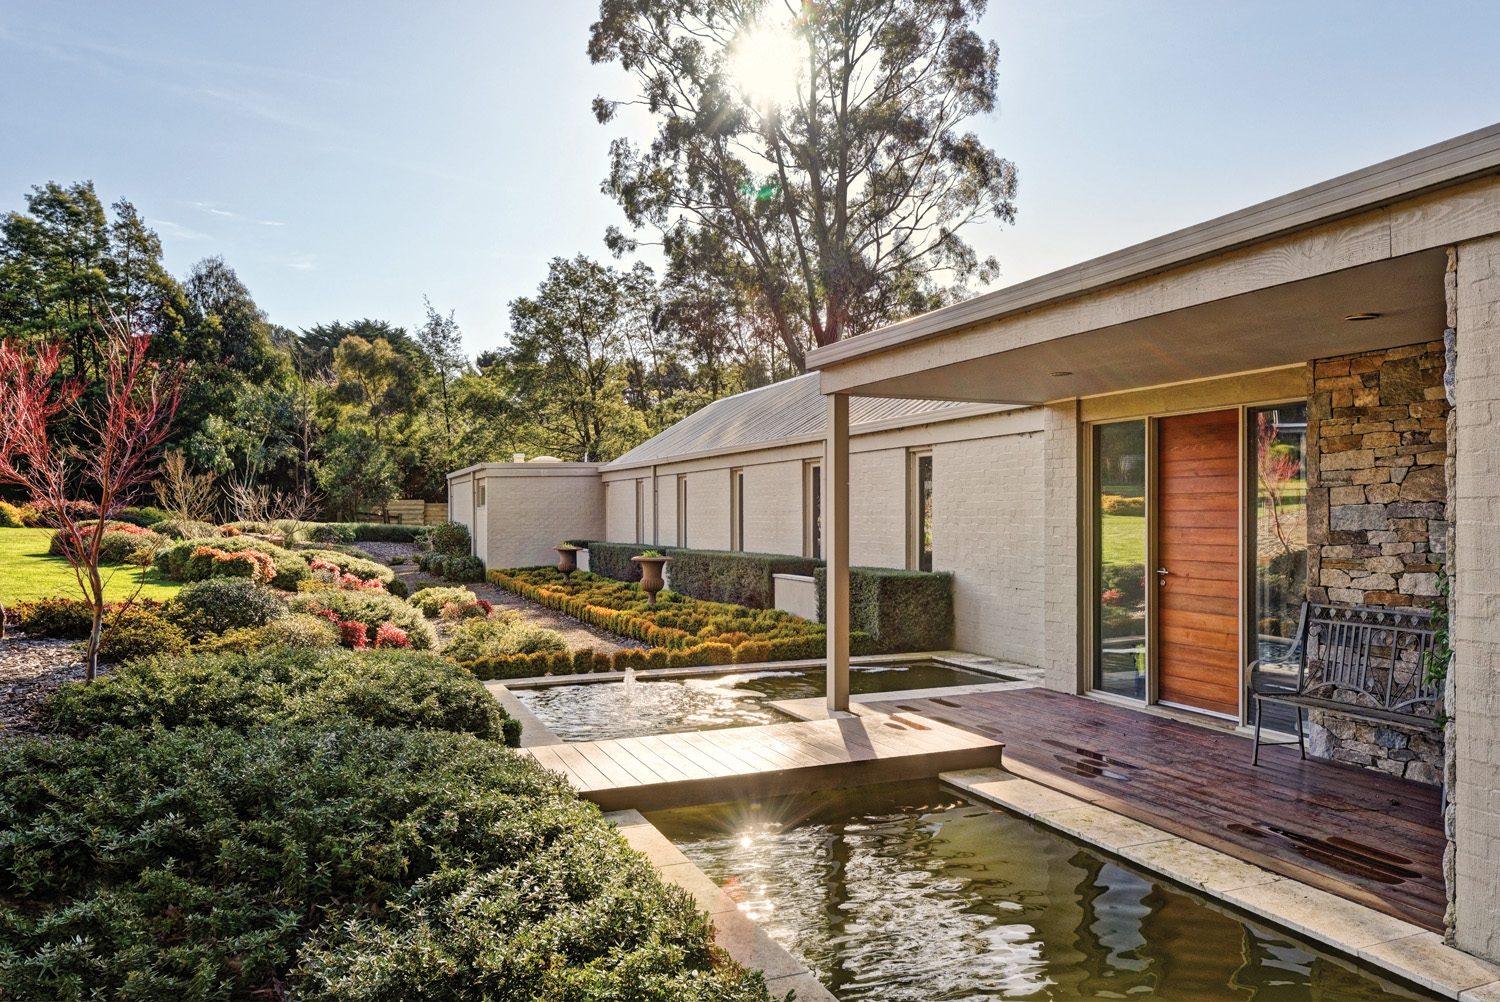 Grand Designs Australia Lay Of The Land Completehome